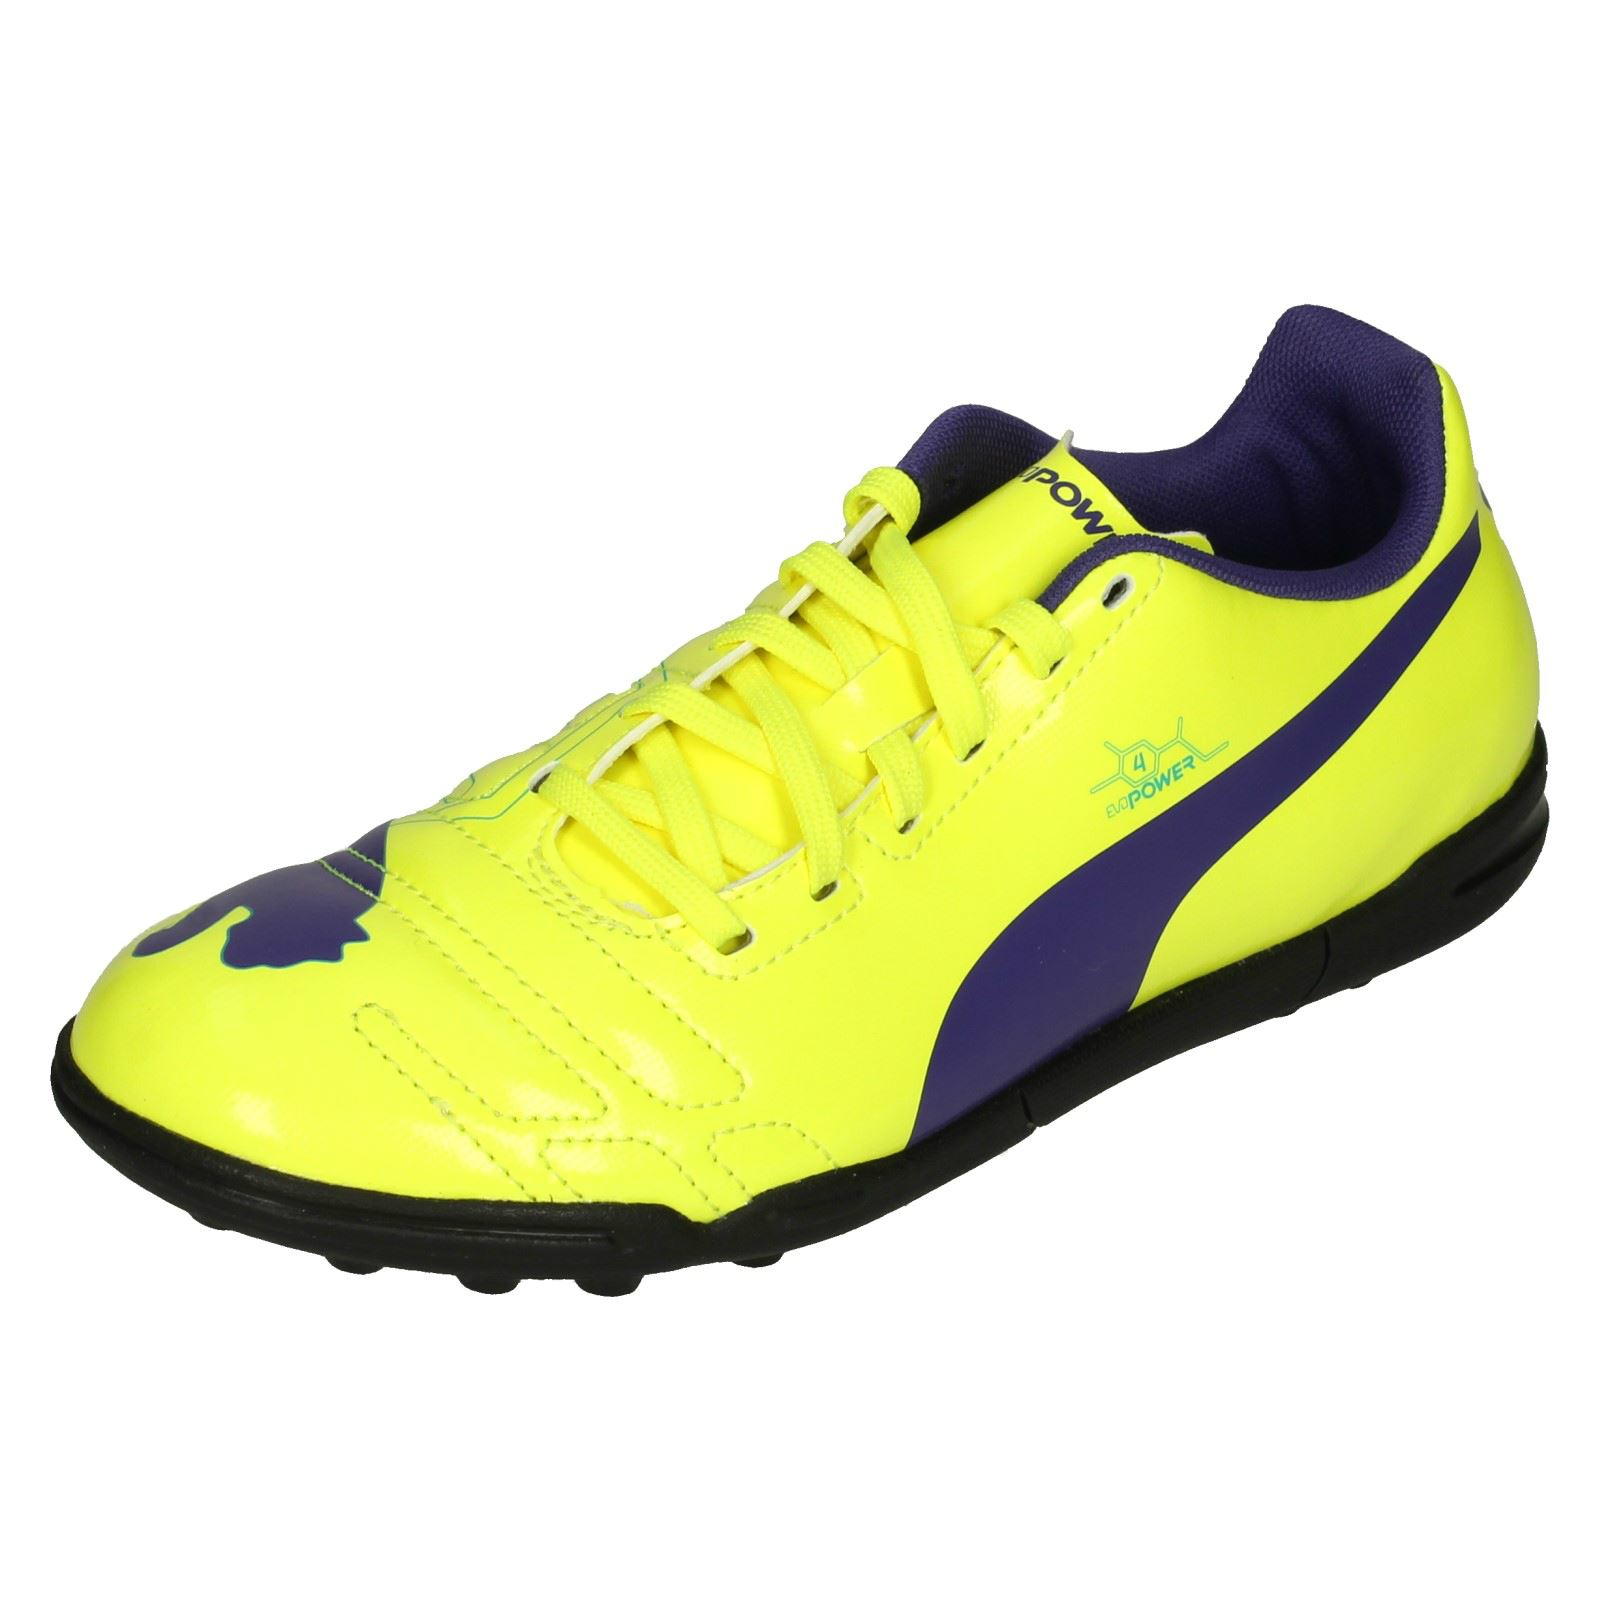 Boys Junior Puma Casual Astro Turf Football Trainers